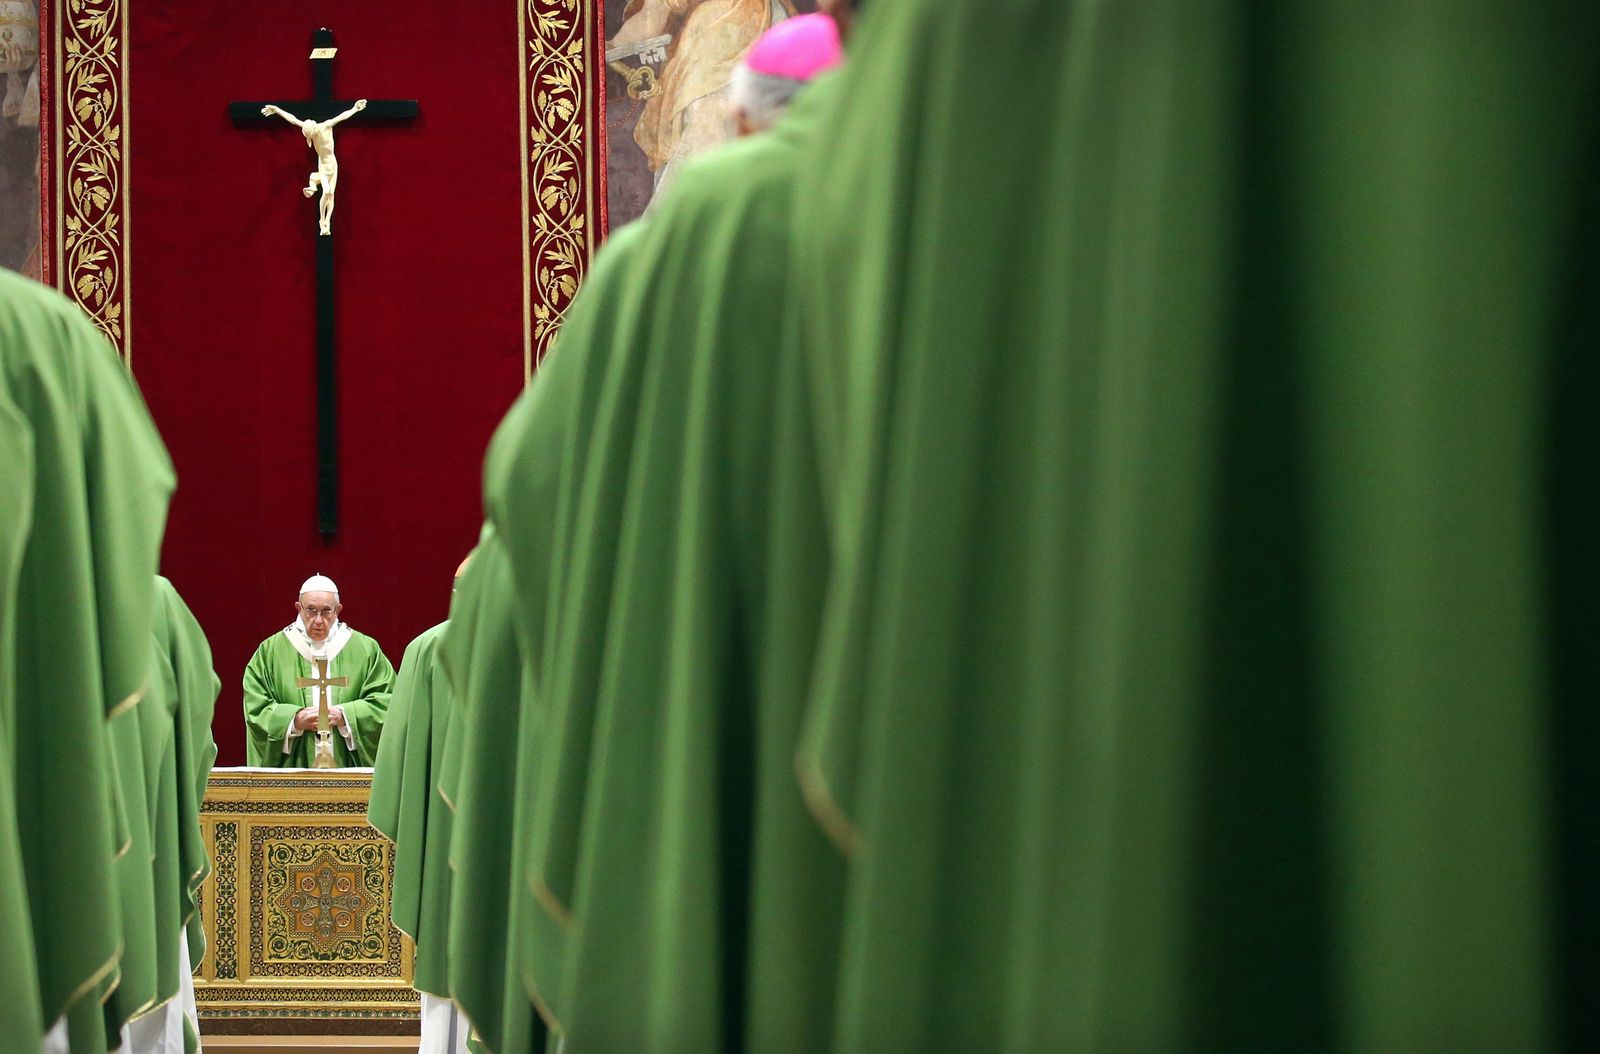 The Pope Holds 'The Protection Of Minors In The Church' Summit